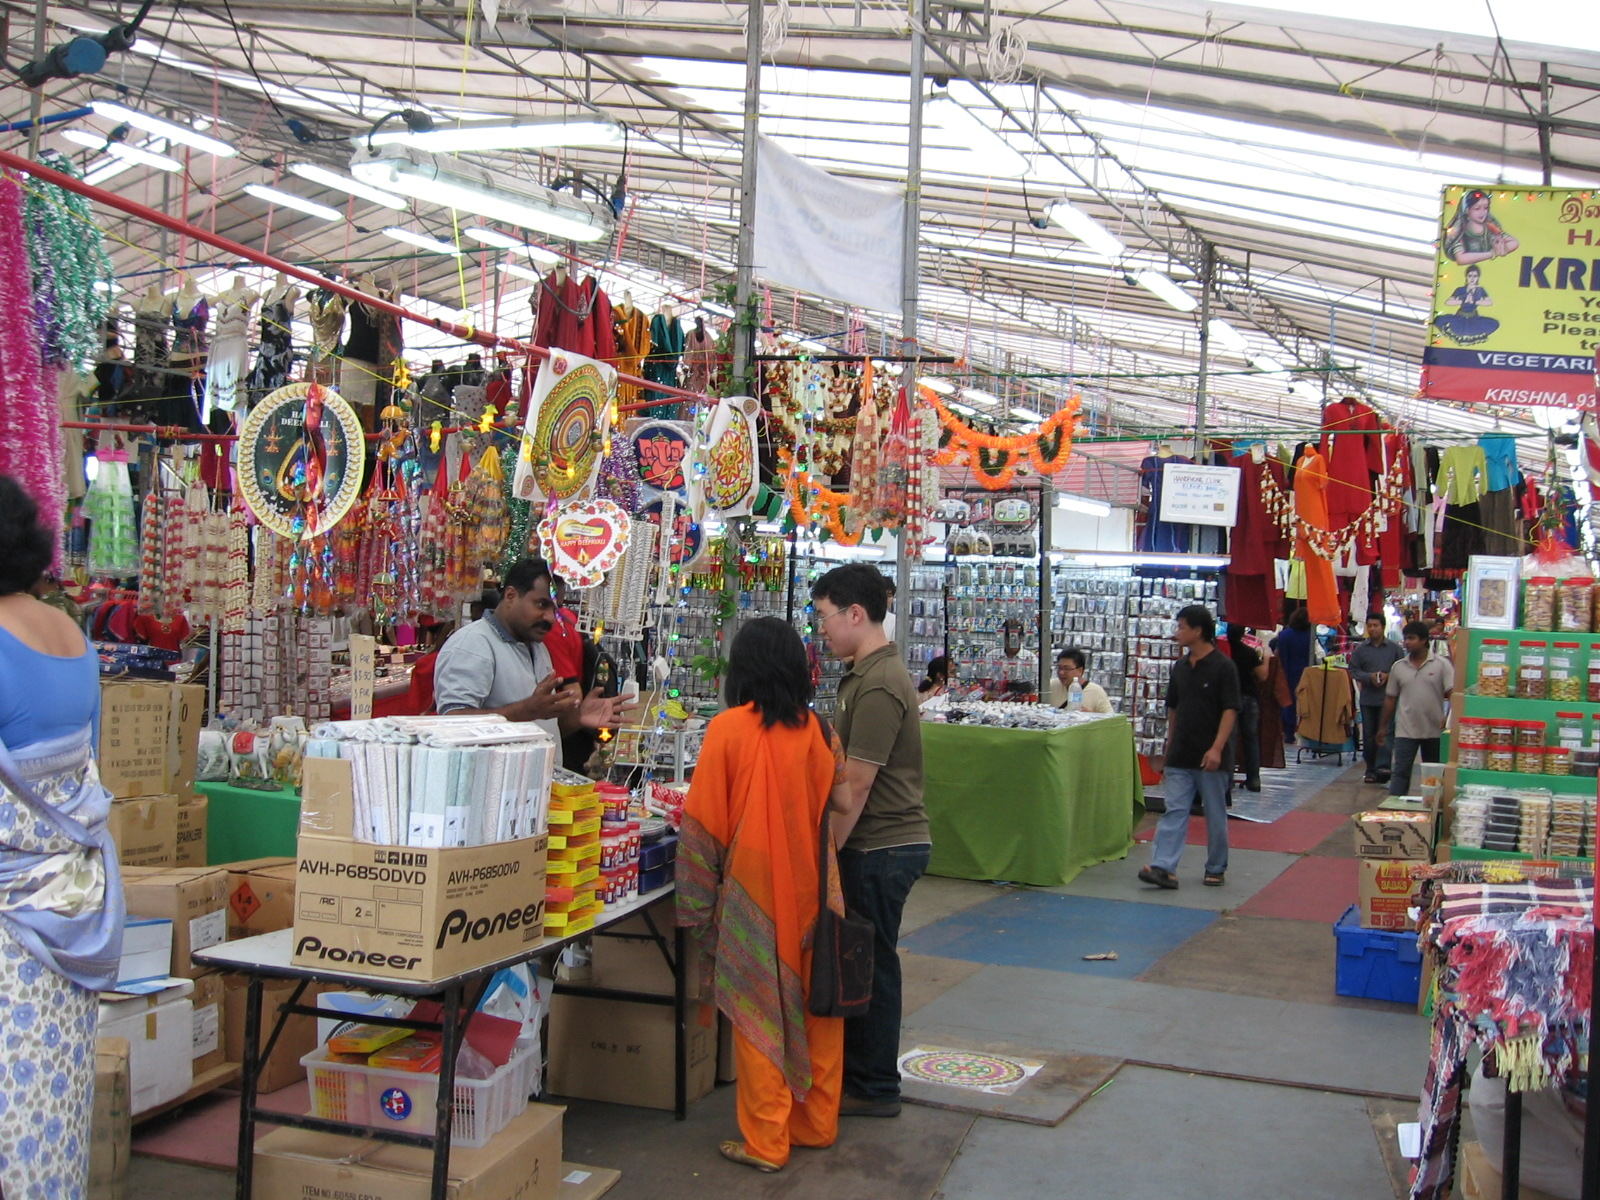 Little India area of Singapore is very popular for selling Indian products.